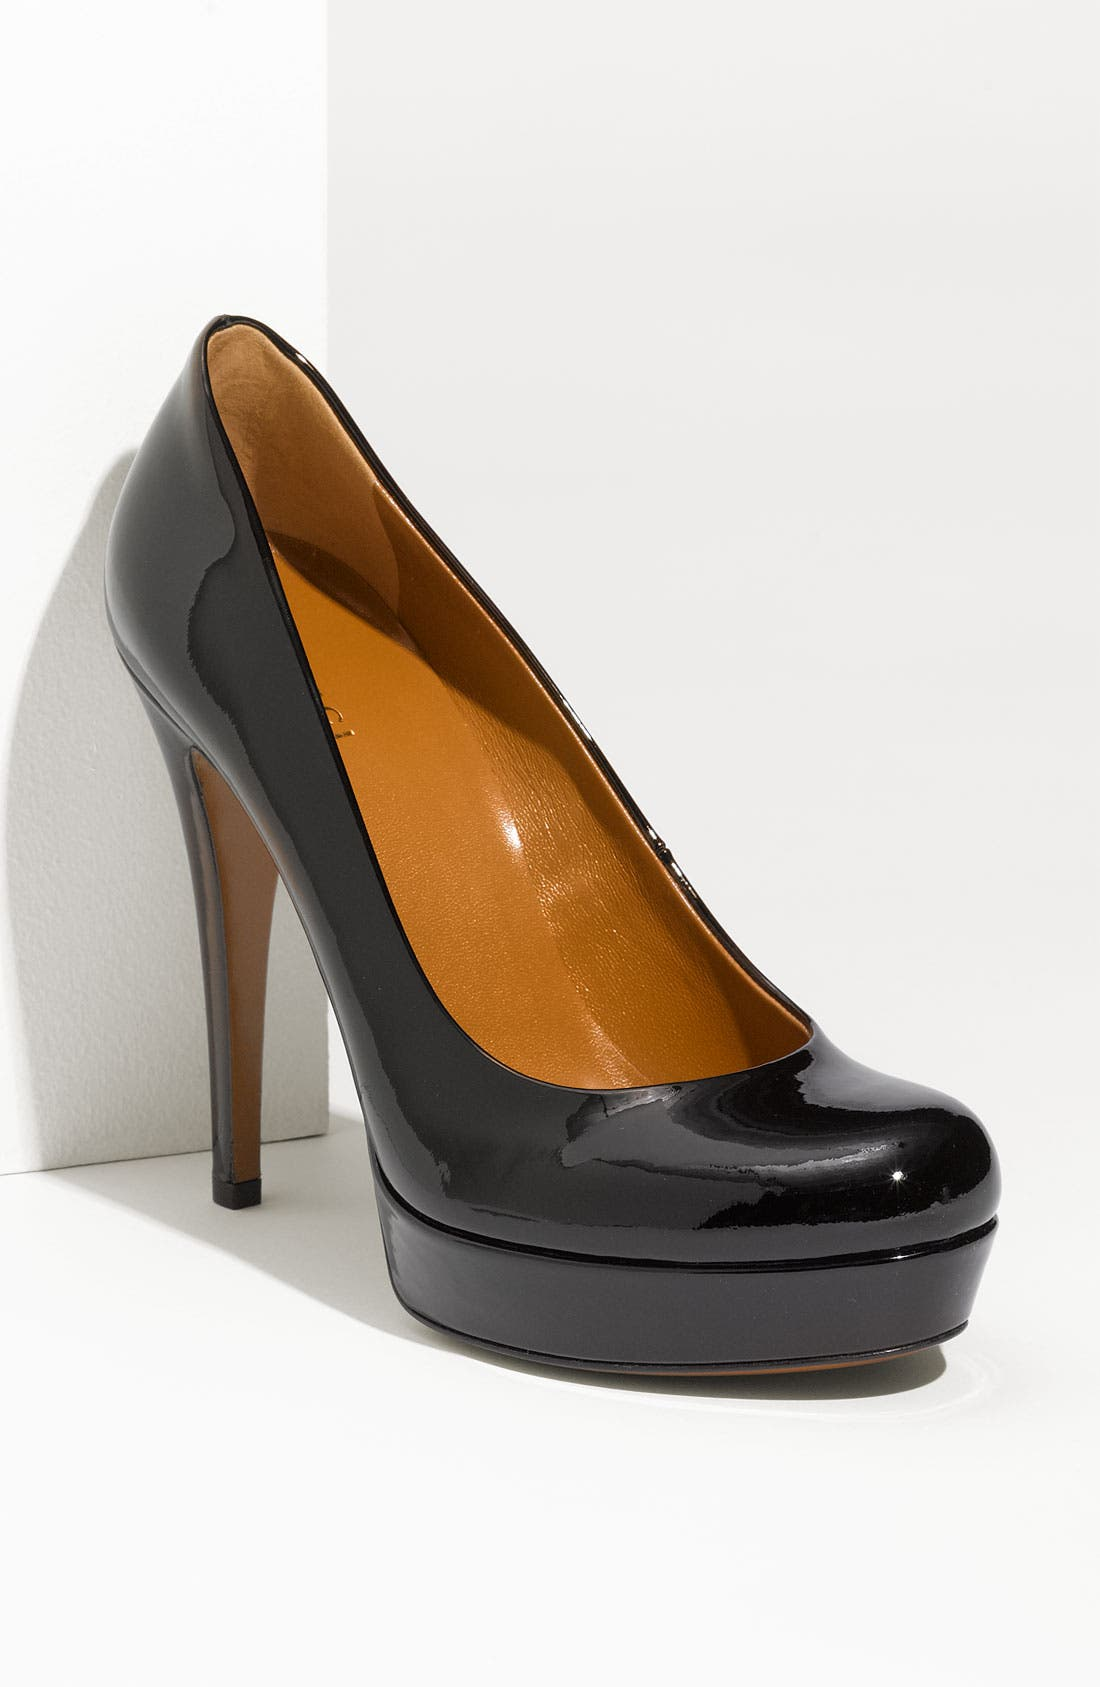 Main Image - Gucci 'Betty' Platform Pump